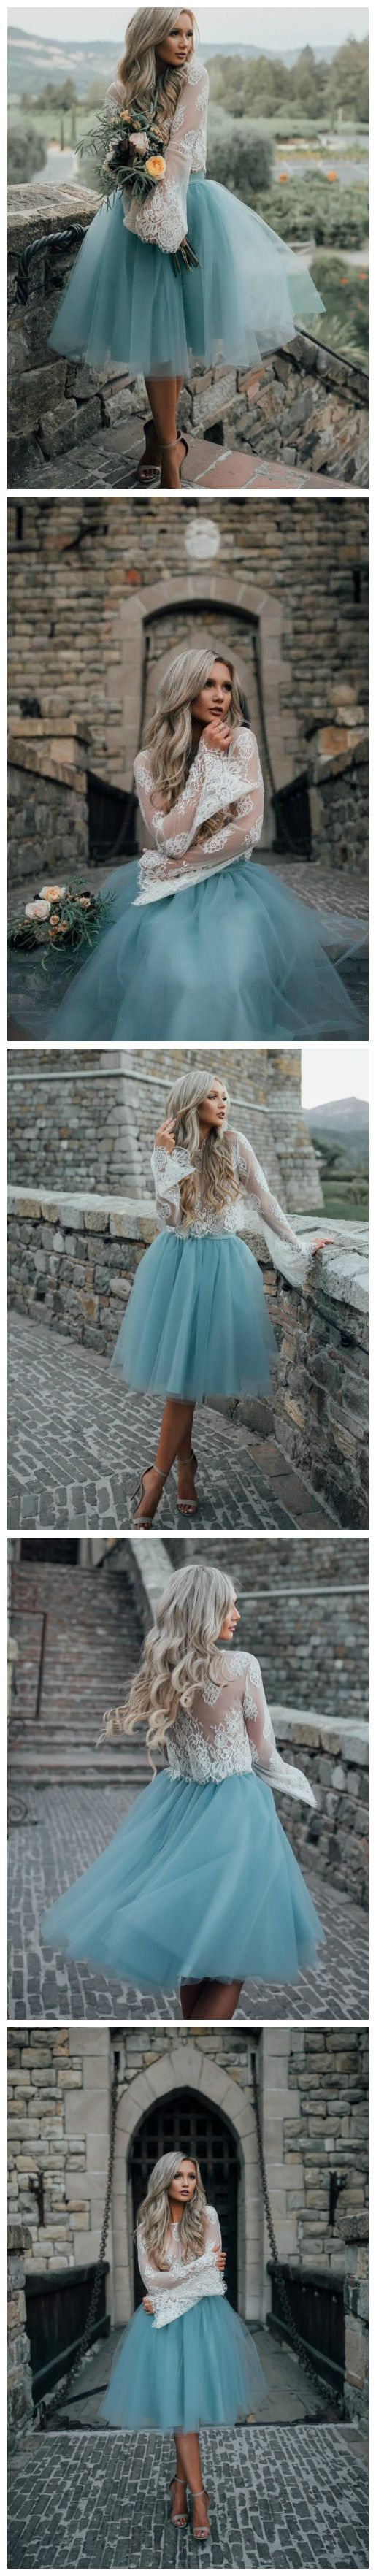 Aline scoop long sleeve homecoming dress tulle green short prom